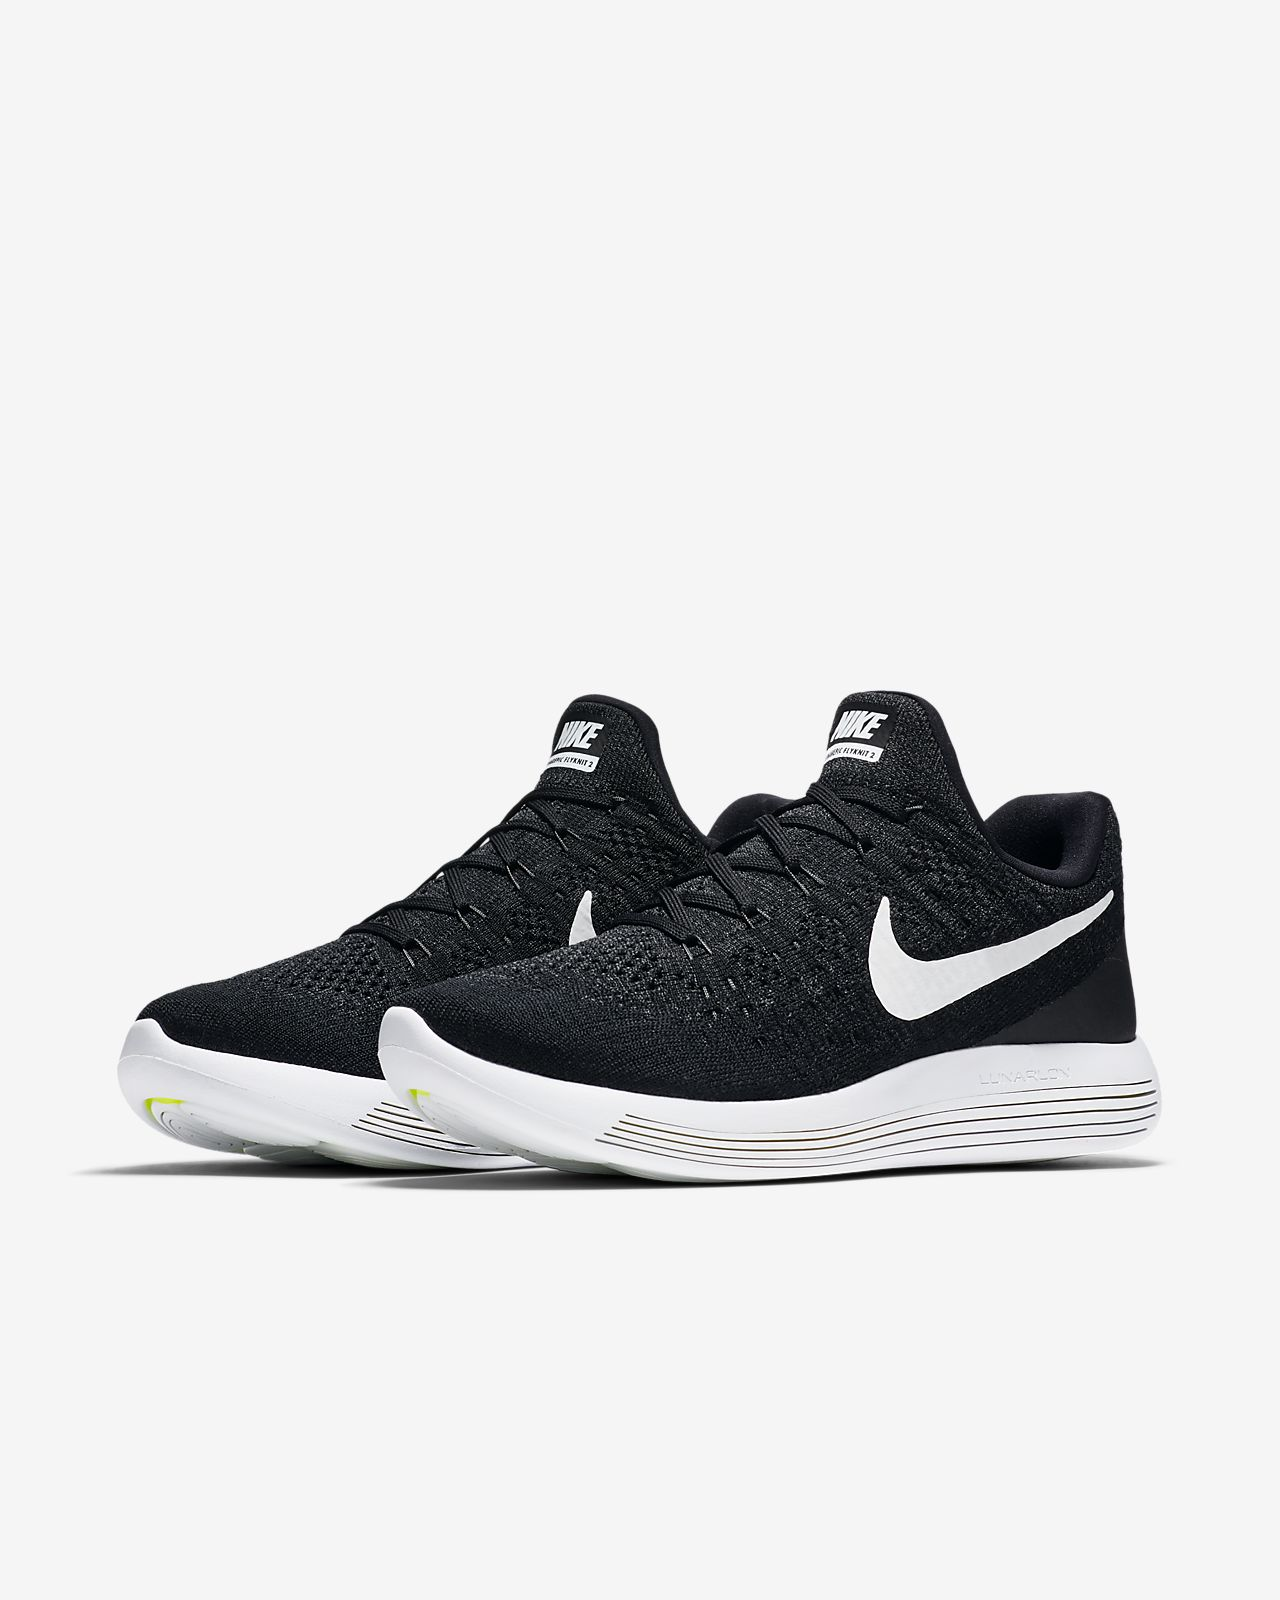 Nike LunarEpic Low Flyknit 2 Mens Running Shoe